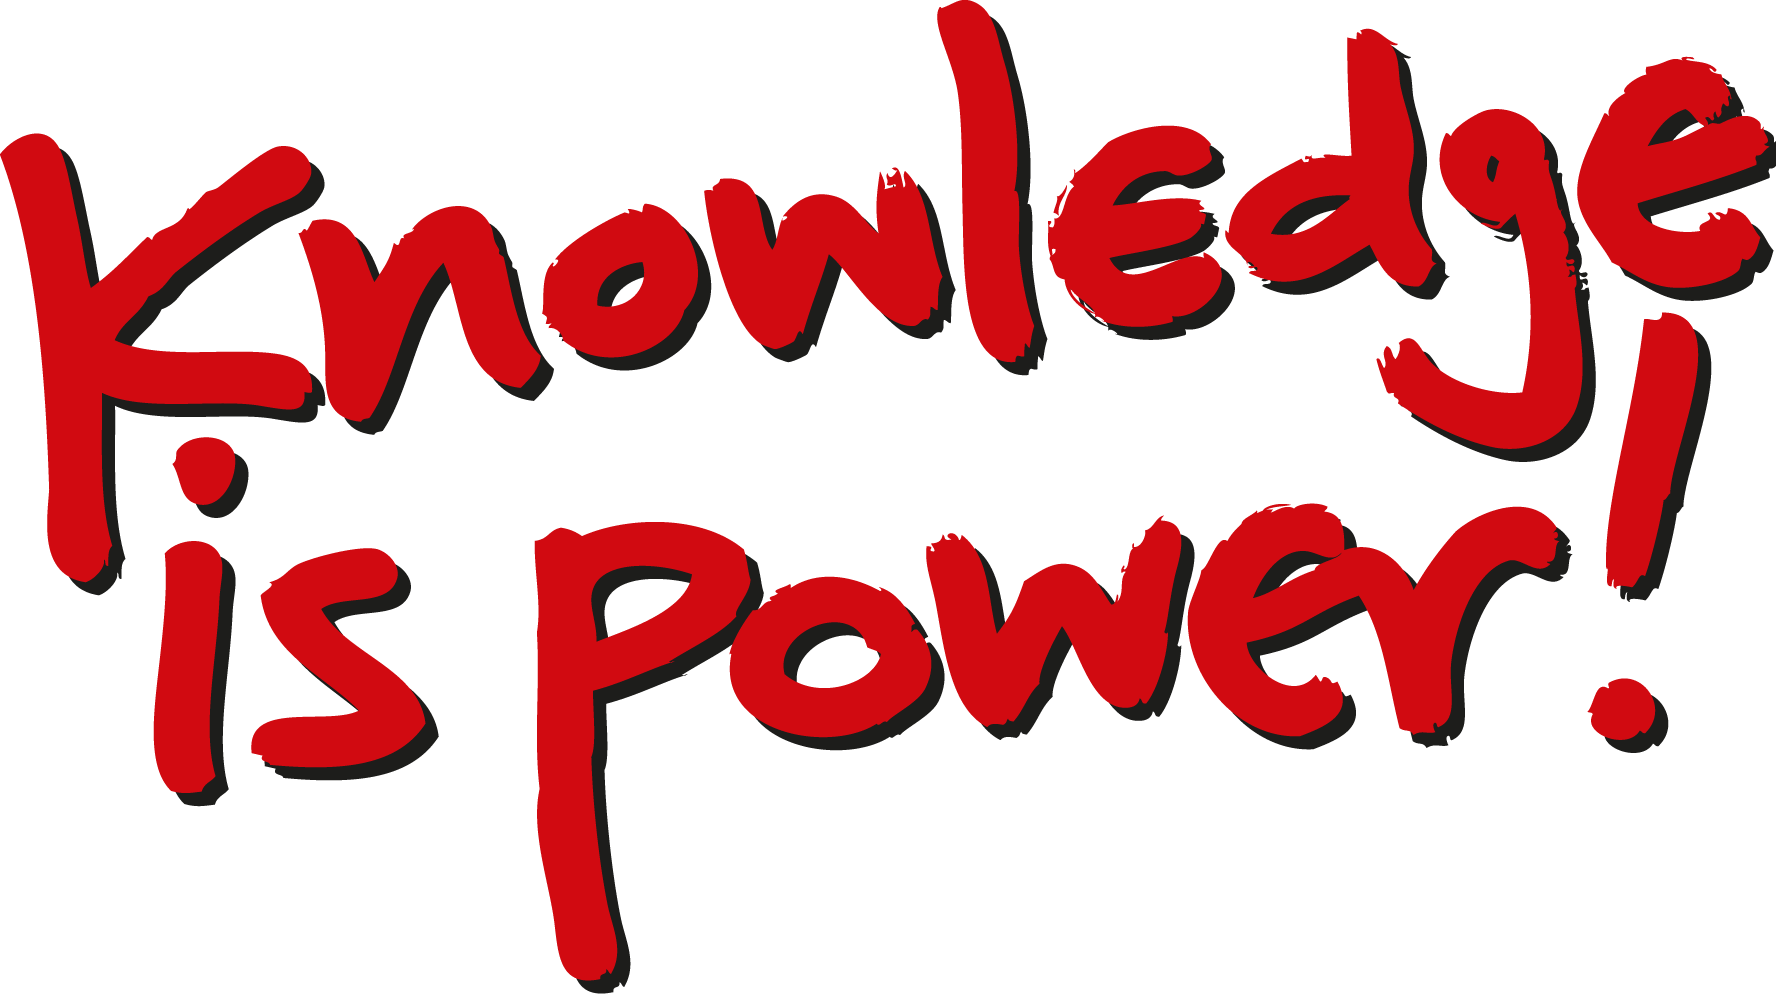 Is. Knowledge clipart knowledge power